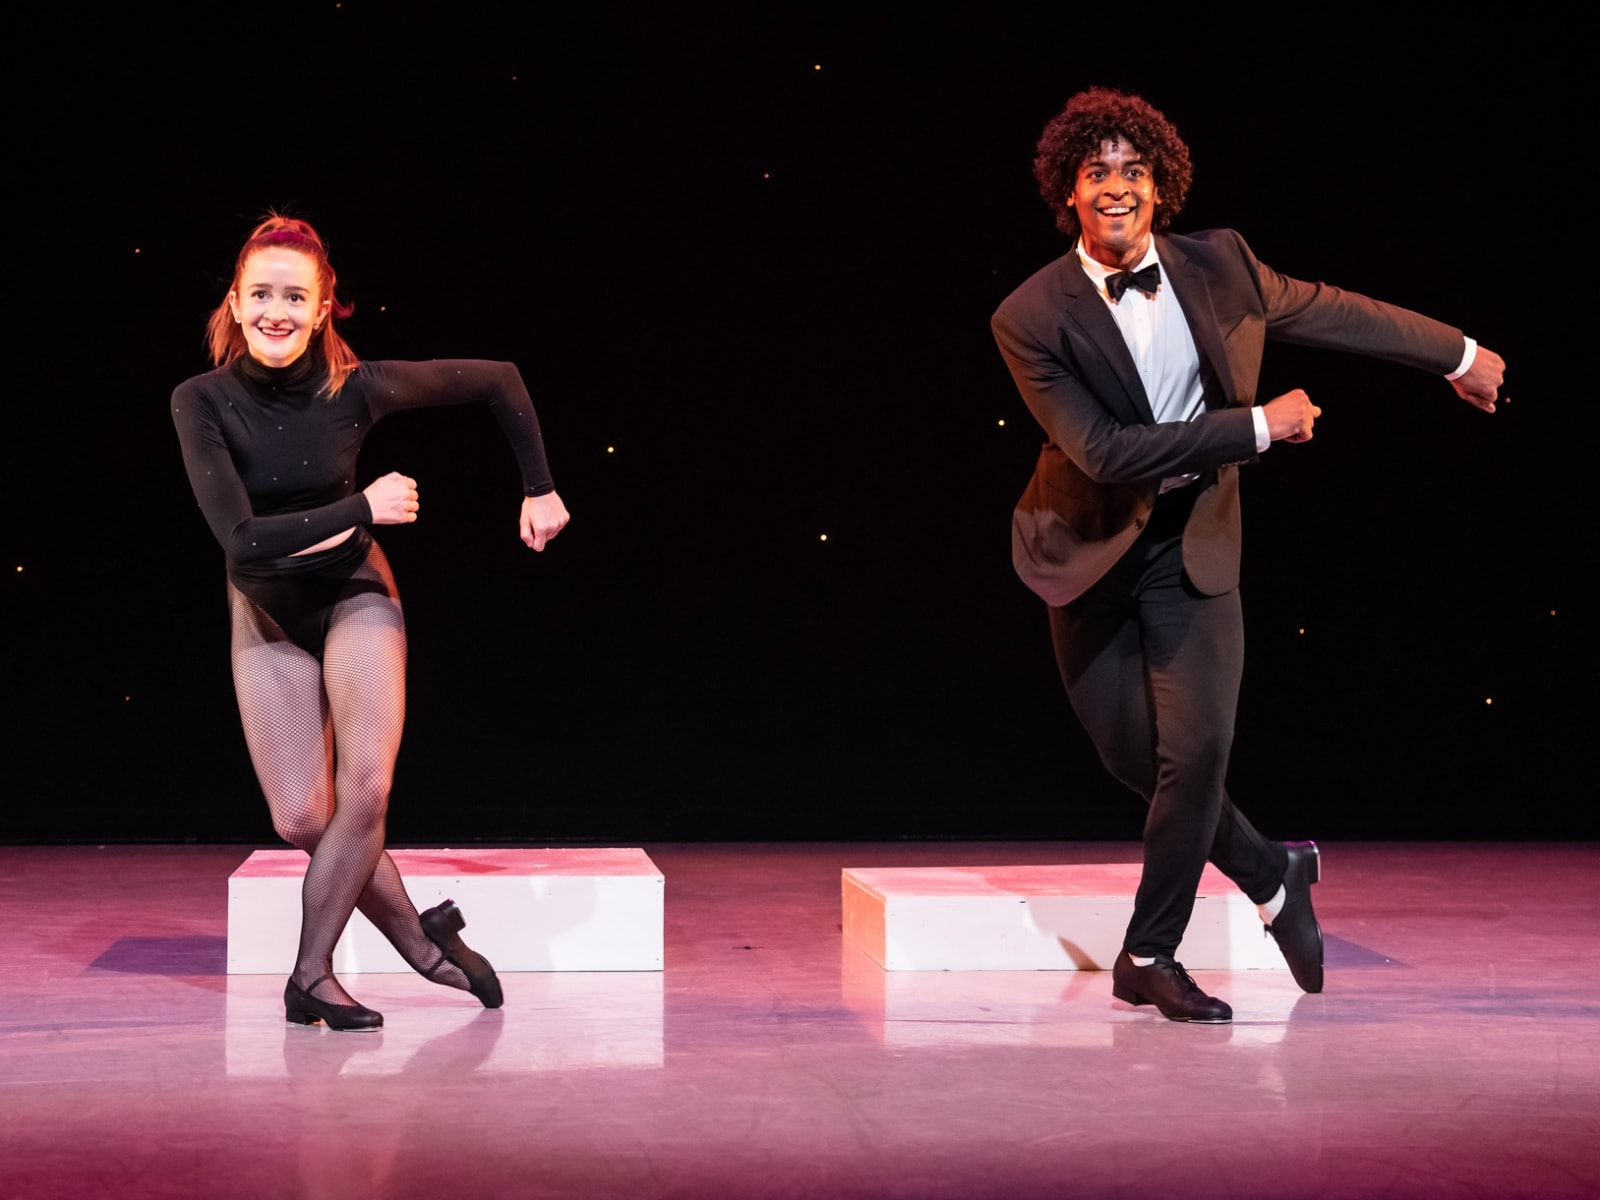 Maggie and Ricky dancing together in tap shoes